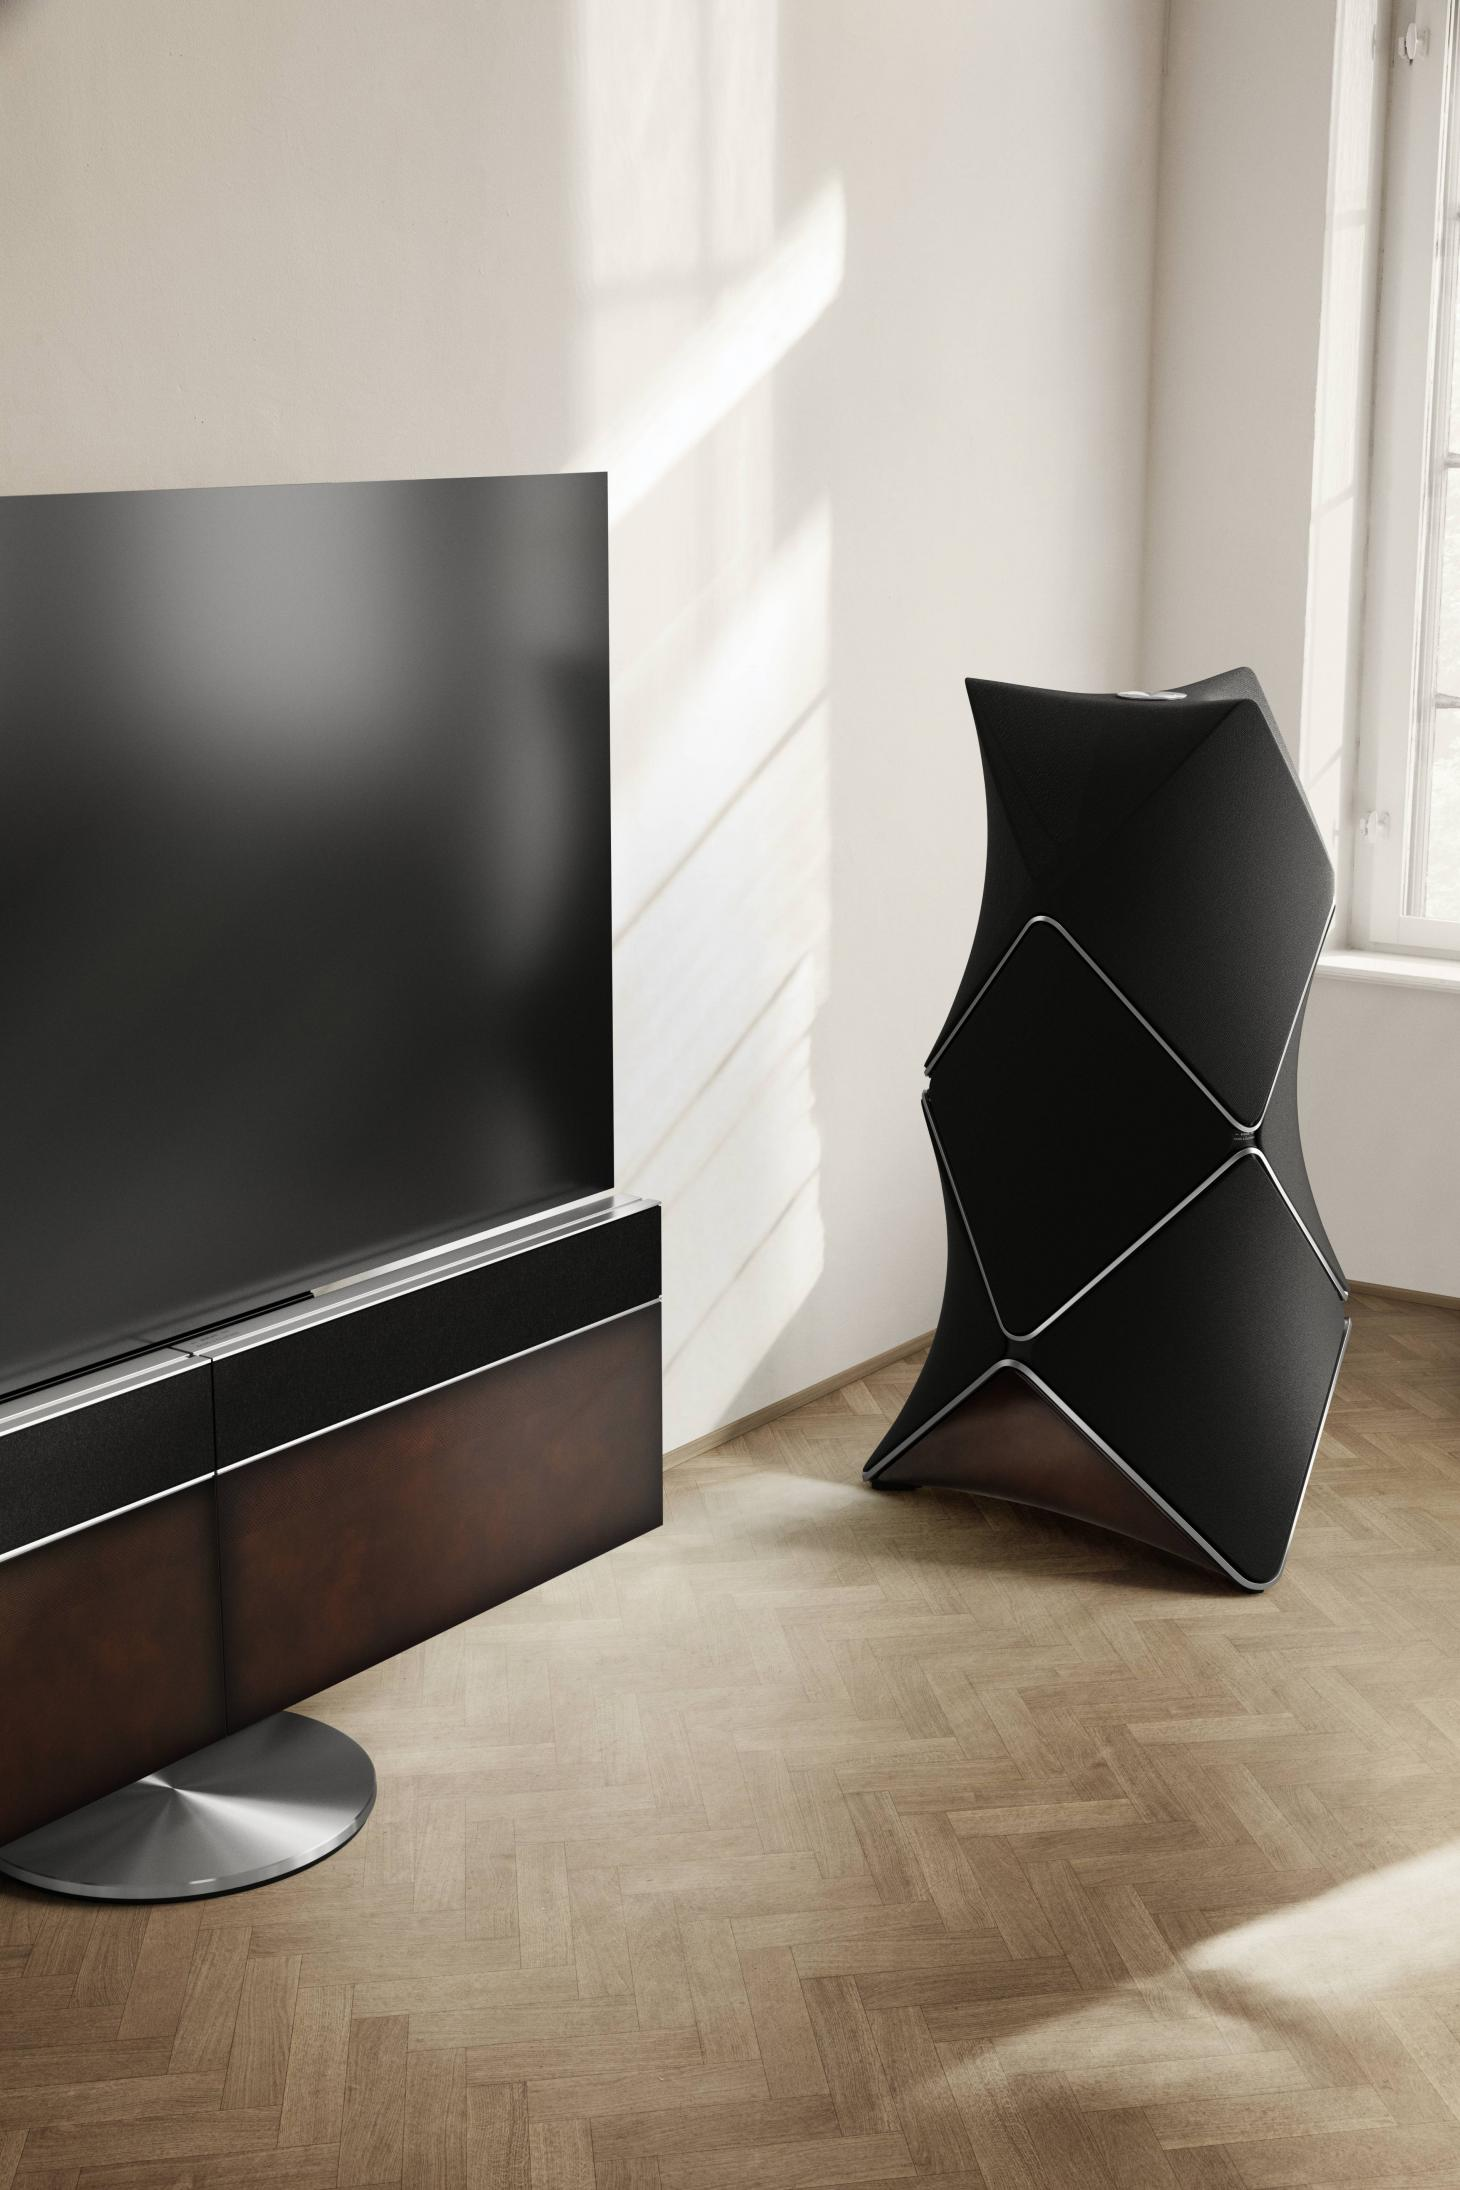 Berluti edition Beovision Harmony 4K television and the Beolab90 speaker